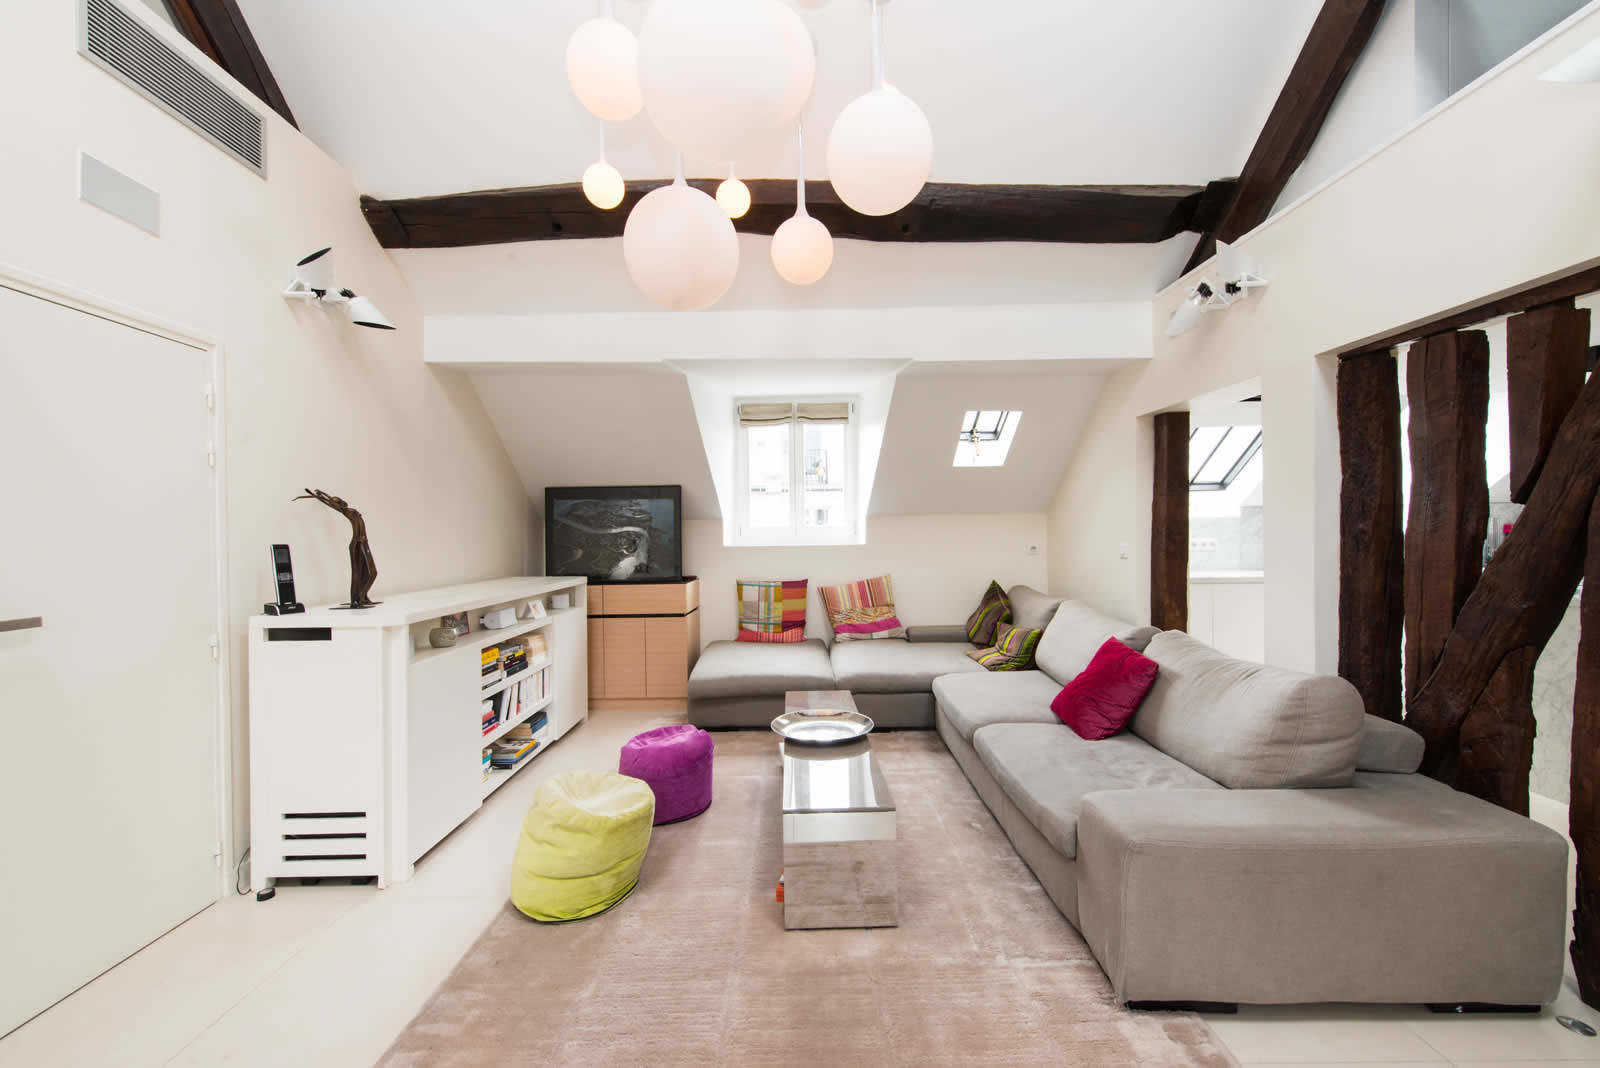 Renovated Apartment with High Ceilings, Exposed Beams, and Hammam ...